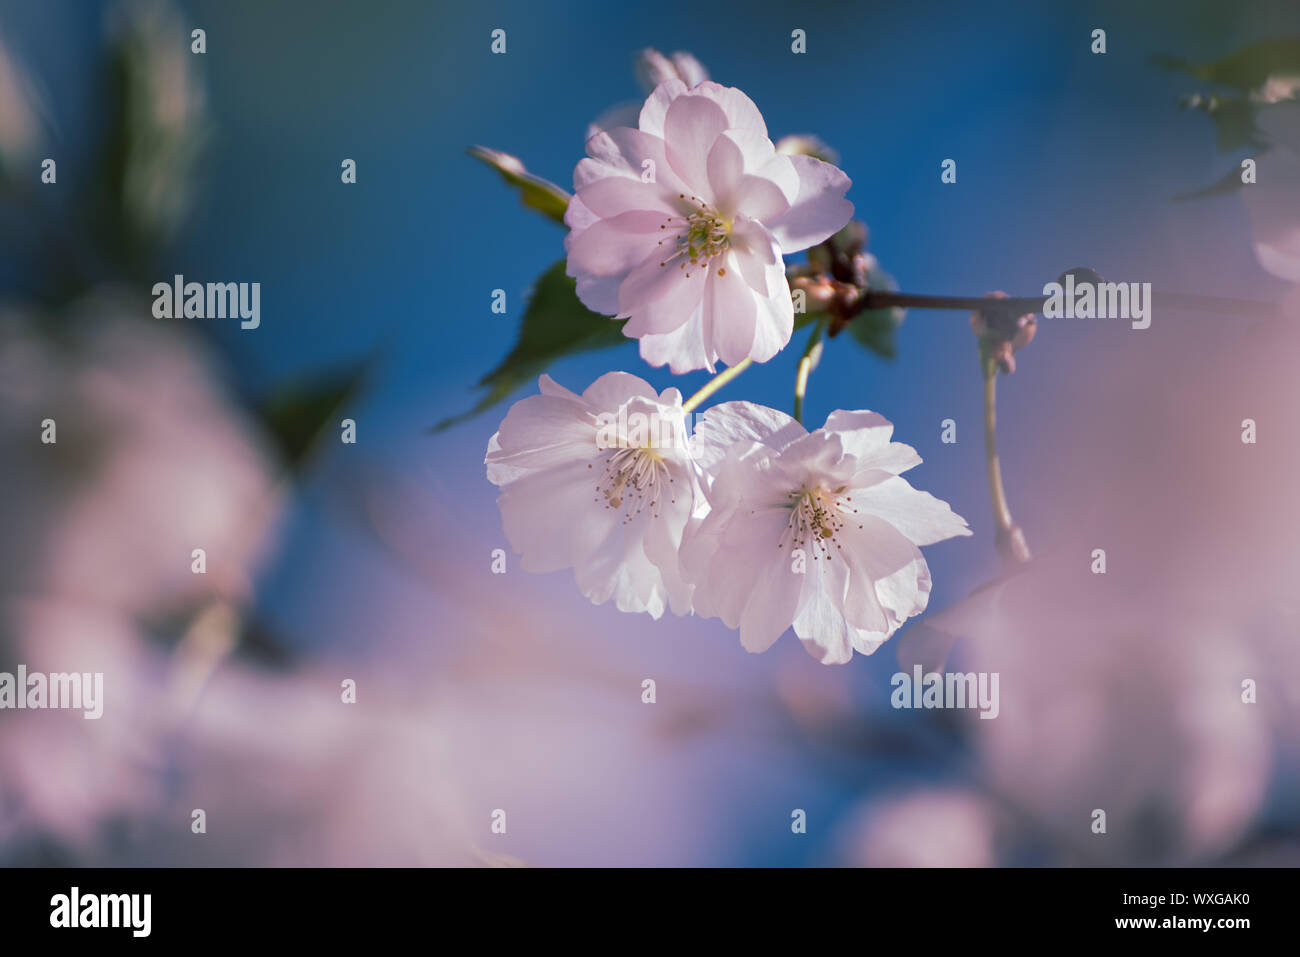 Blossoming of the apricot tree in spring time with white beautiful flowers. Macro image with copy space. Natural seasonal background. Stock Photo